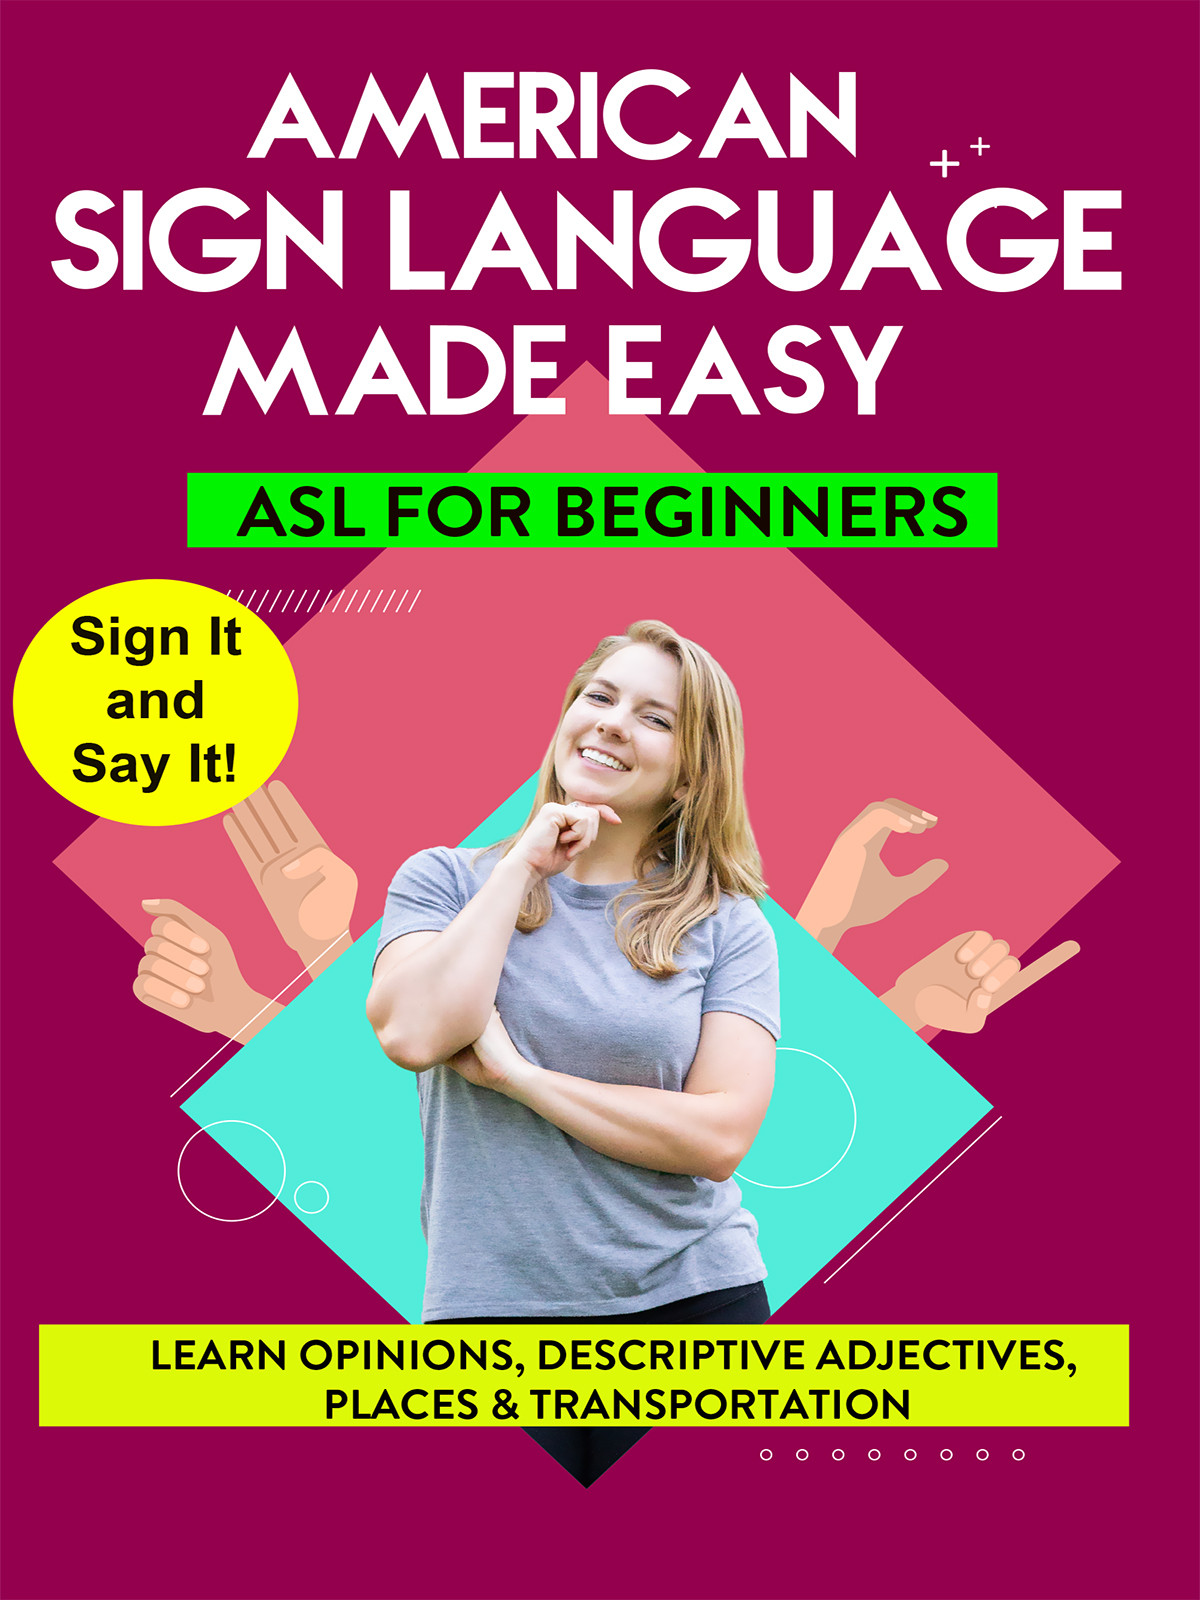 K9803 - ASL - Learn Opinions, Descriptive Adjectives, Places & Transportation